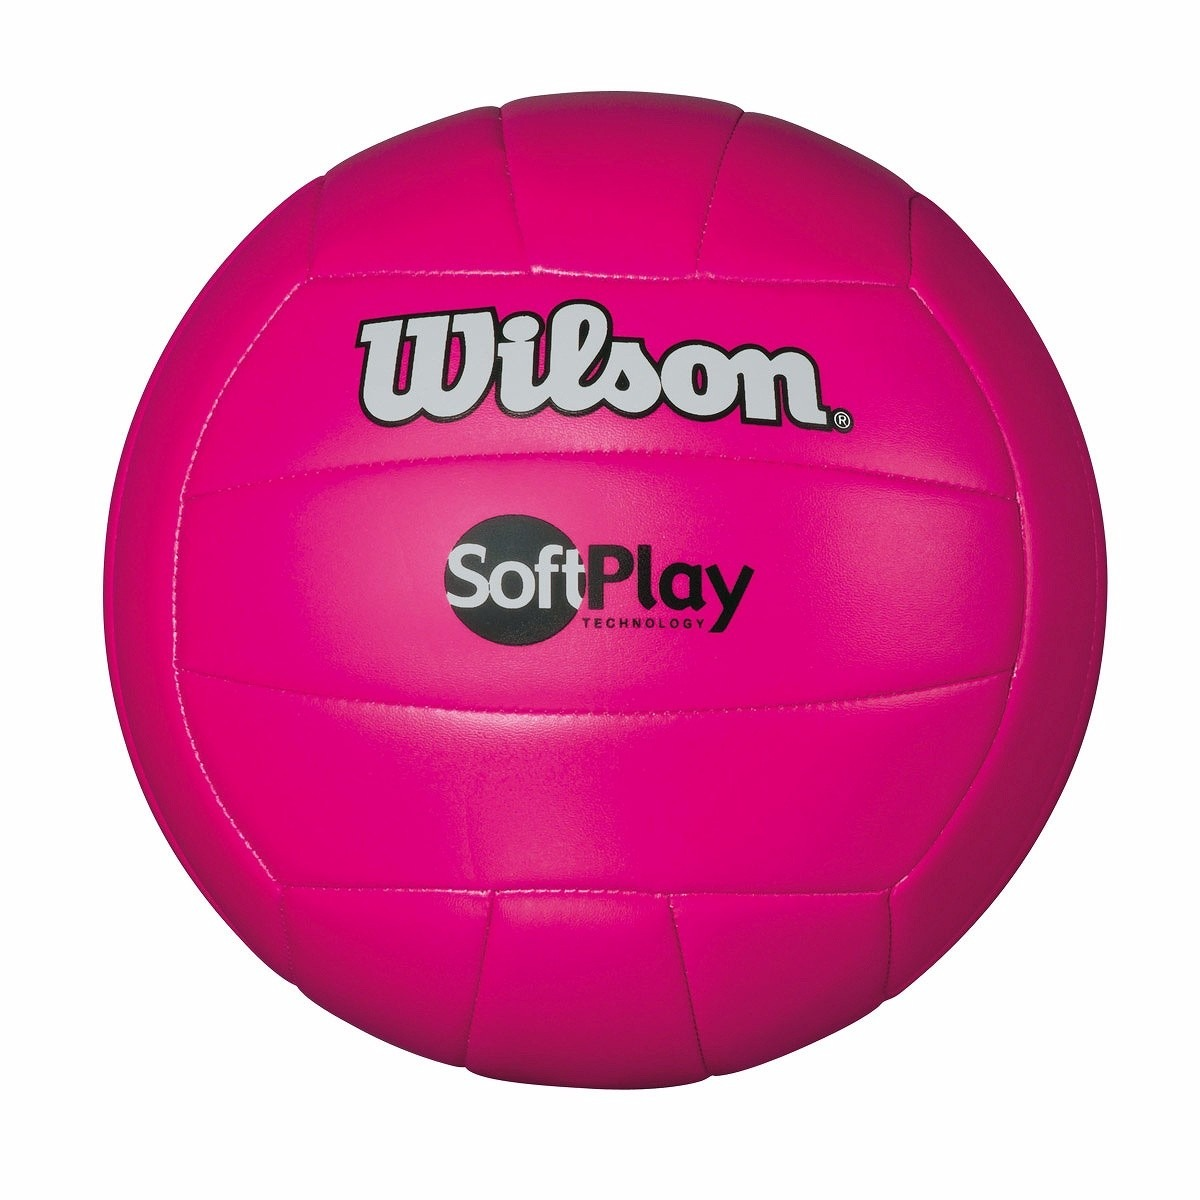 Bola De Vôlei Wilson Soft Play Wth 3501 Rosa Original Part 58